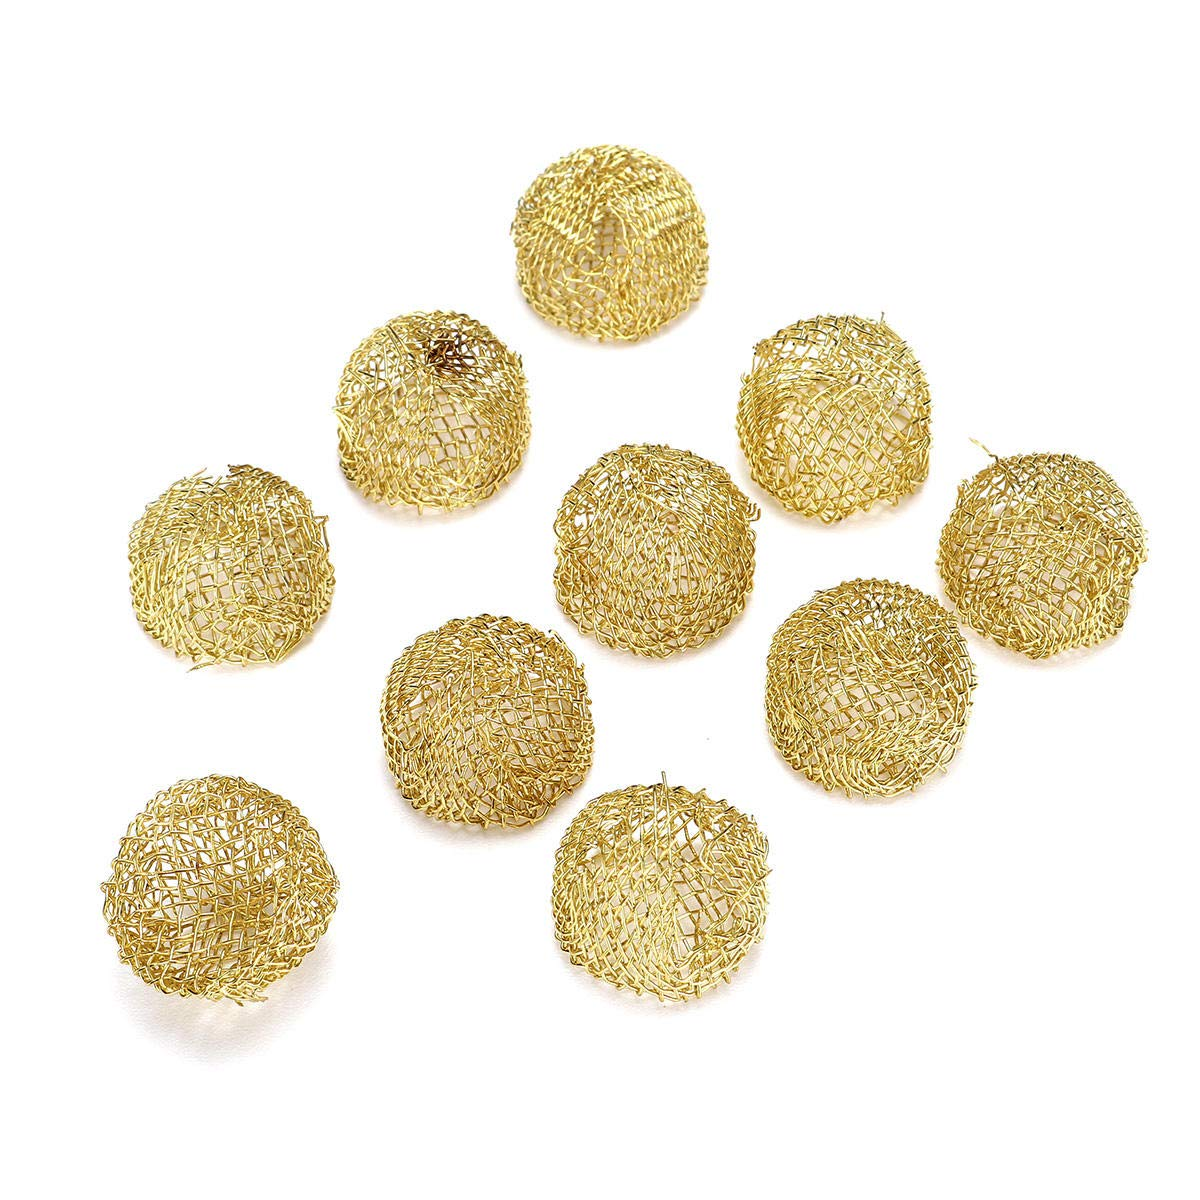 17mm 10Pcs Pipe Screen Filter Ball Combustion-supporting Reticular Ball Replacement Tools Kit